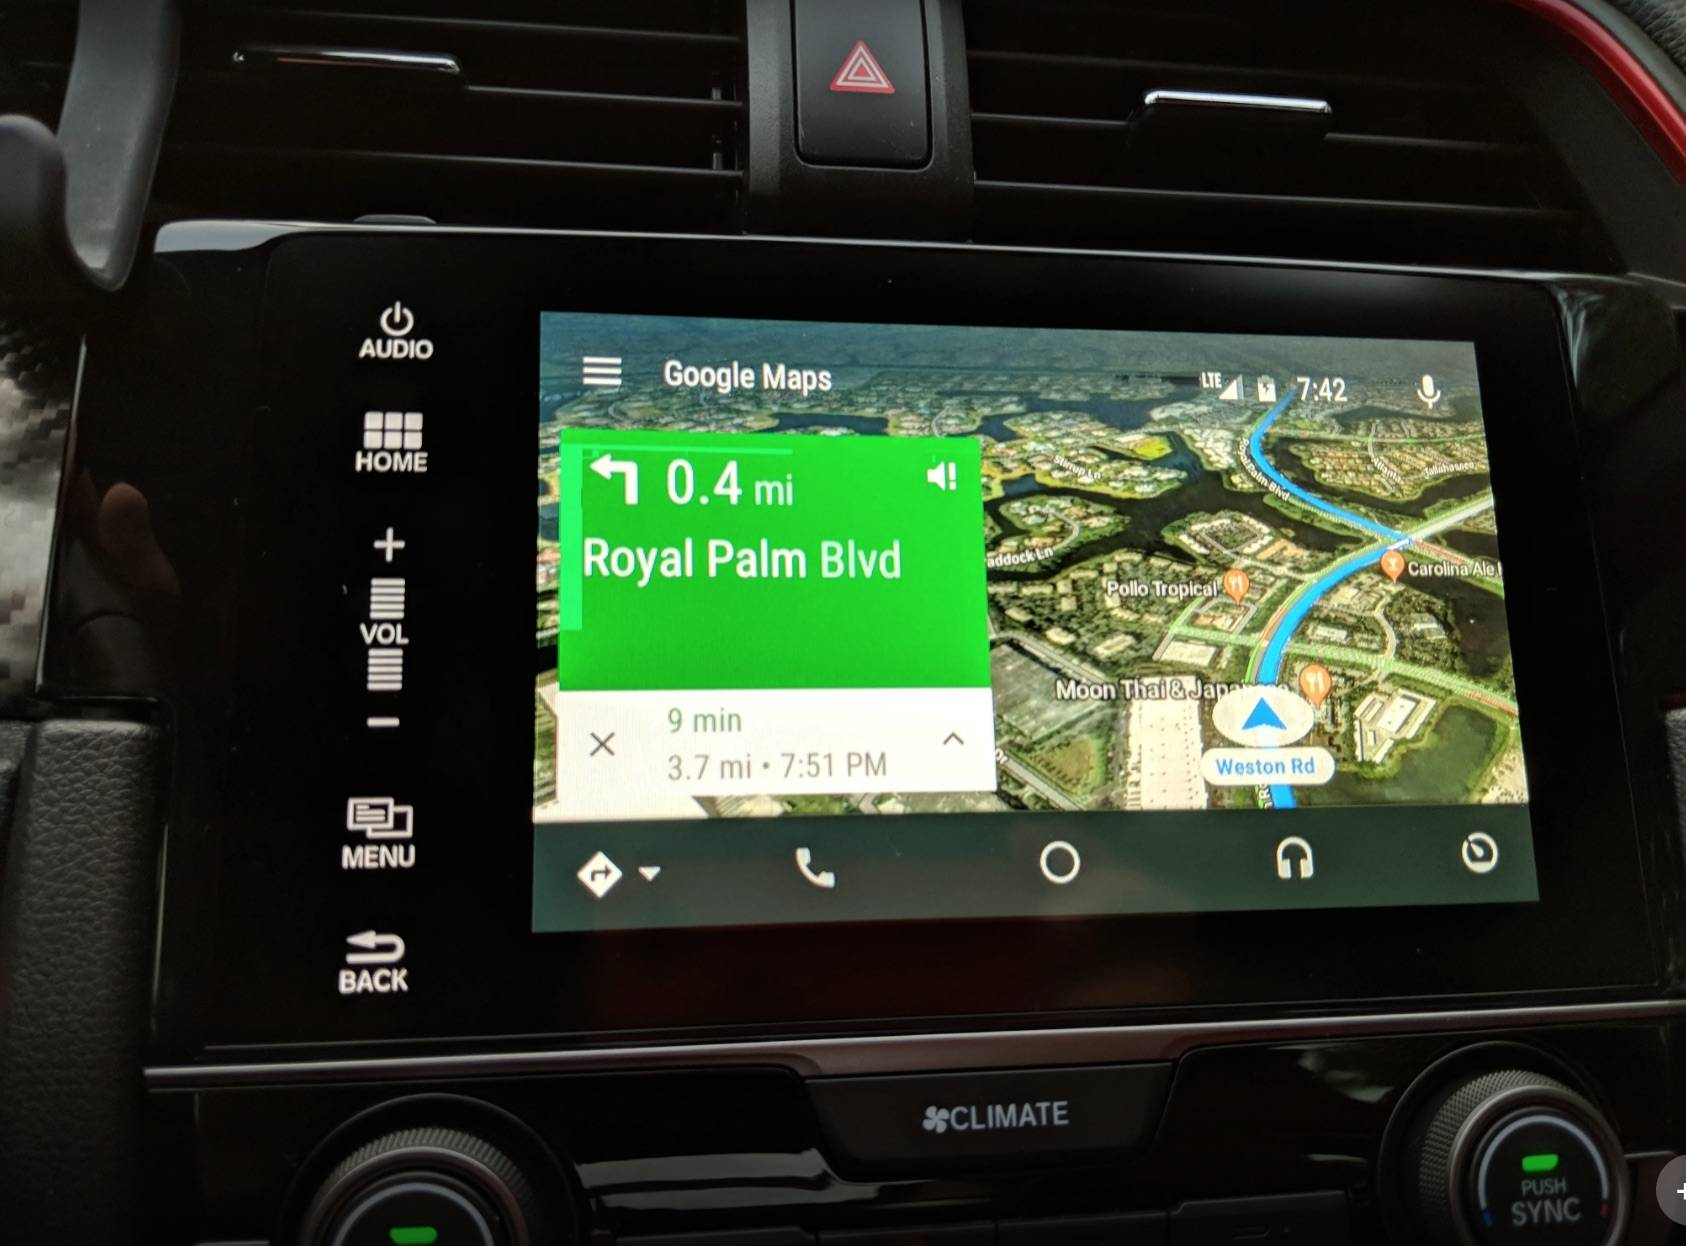 Google Maps' satellite view finally comes to Android Auto ... on google map marseille, land navigation, google places, openstreetmap navigation, google navigation app, phone navigation, google search navigation, google india map, google map manitoba canada, google map of alberta, google map texas a&m, google map pin, google search mapquest, here navigation, google now traffic, google earth, gps navigation, google satellite map, google quick search box, google map example,